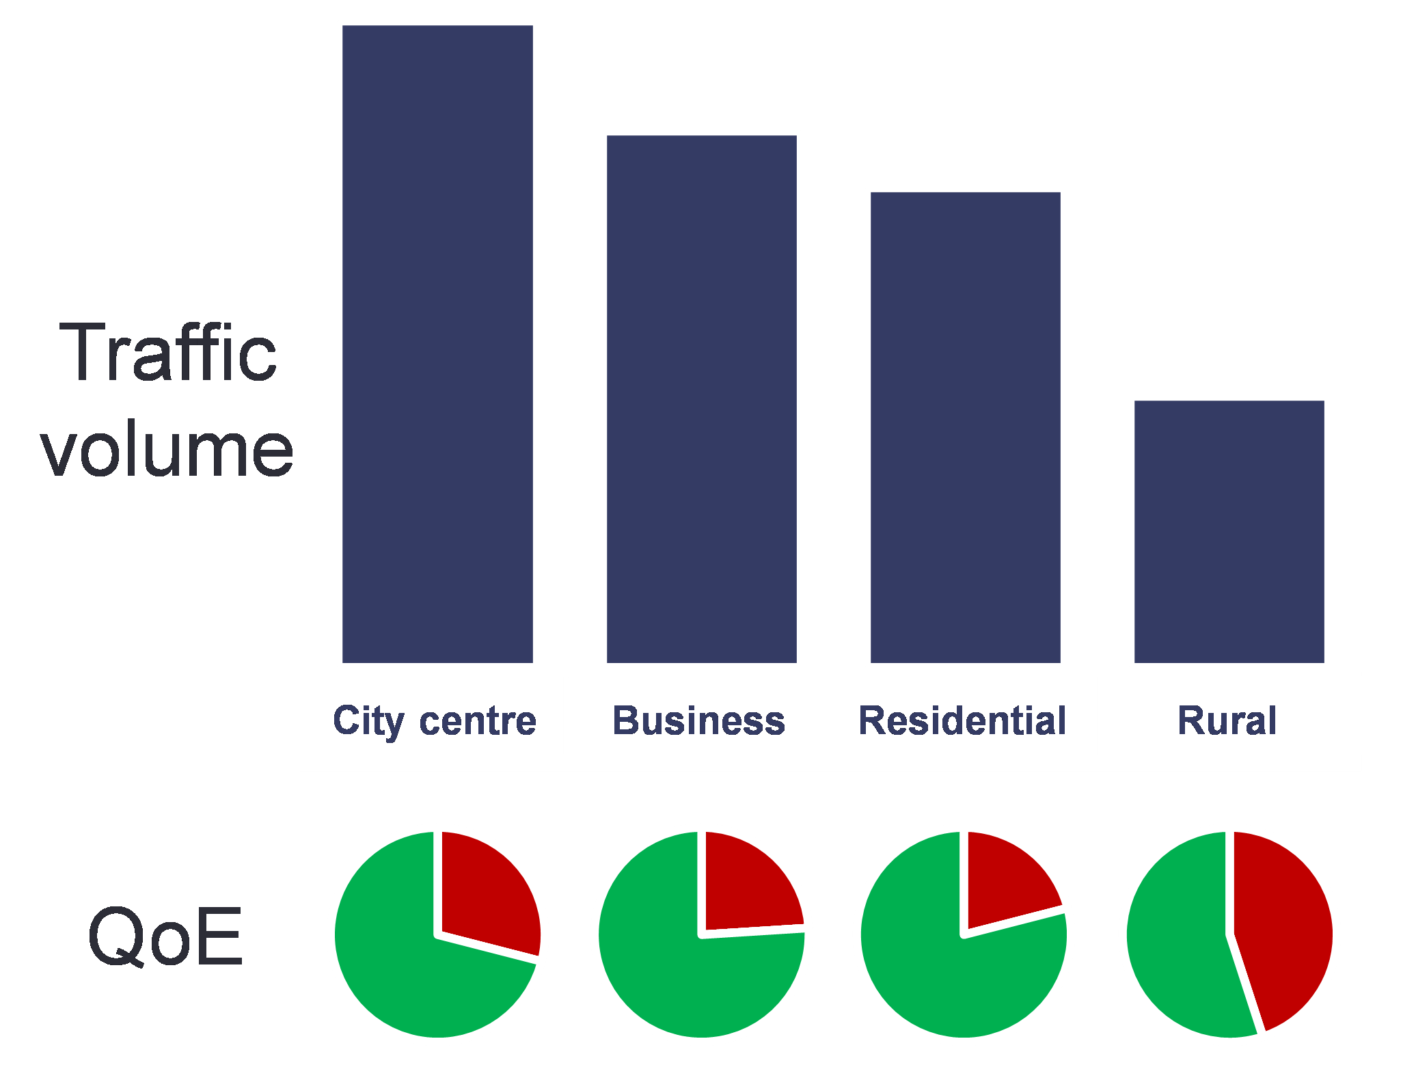 Network performance pre-restrictions. Traffic volume and QoE